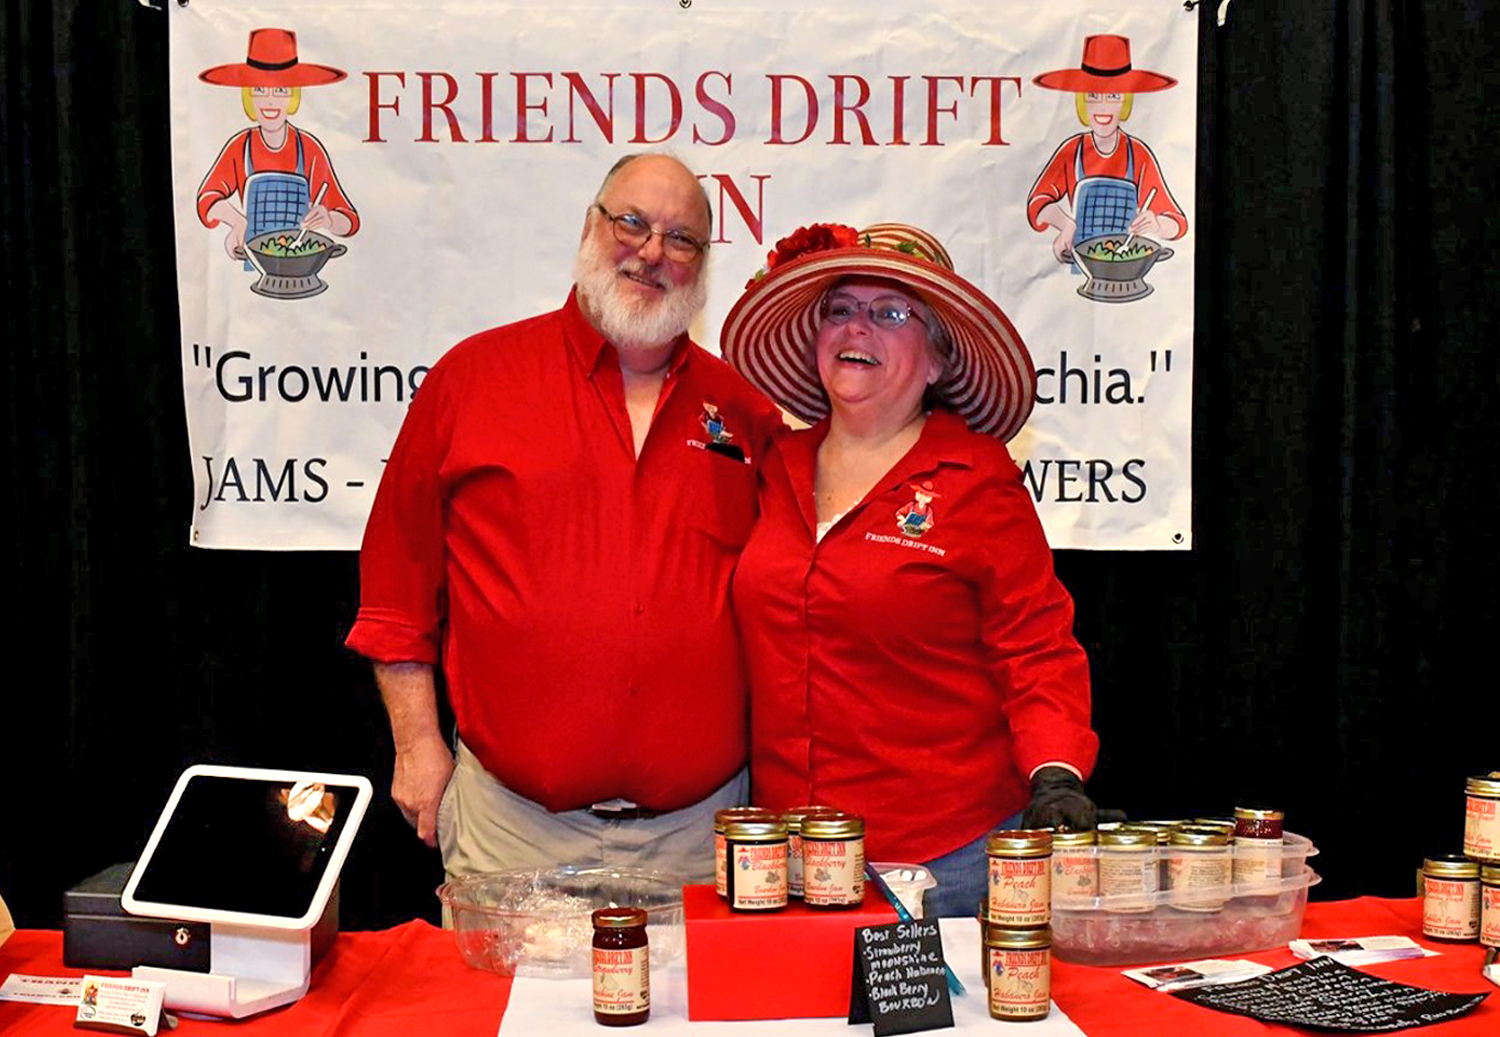 Charlie and Joyce Pinson, Friends Drift Inn Jams and Specialty Foods